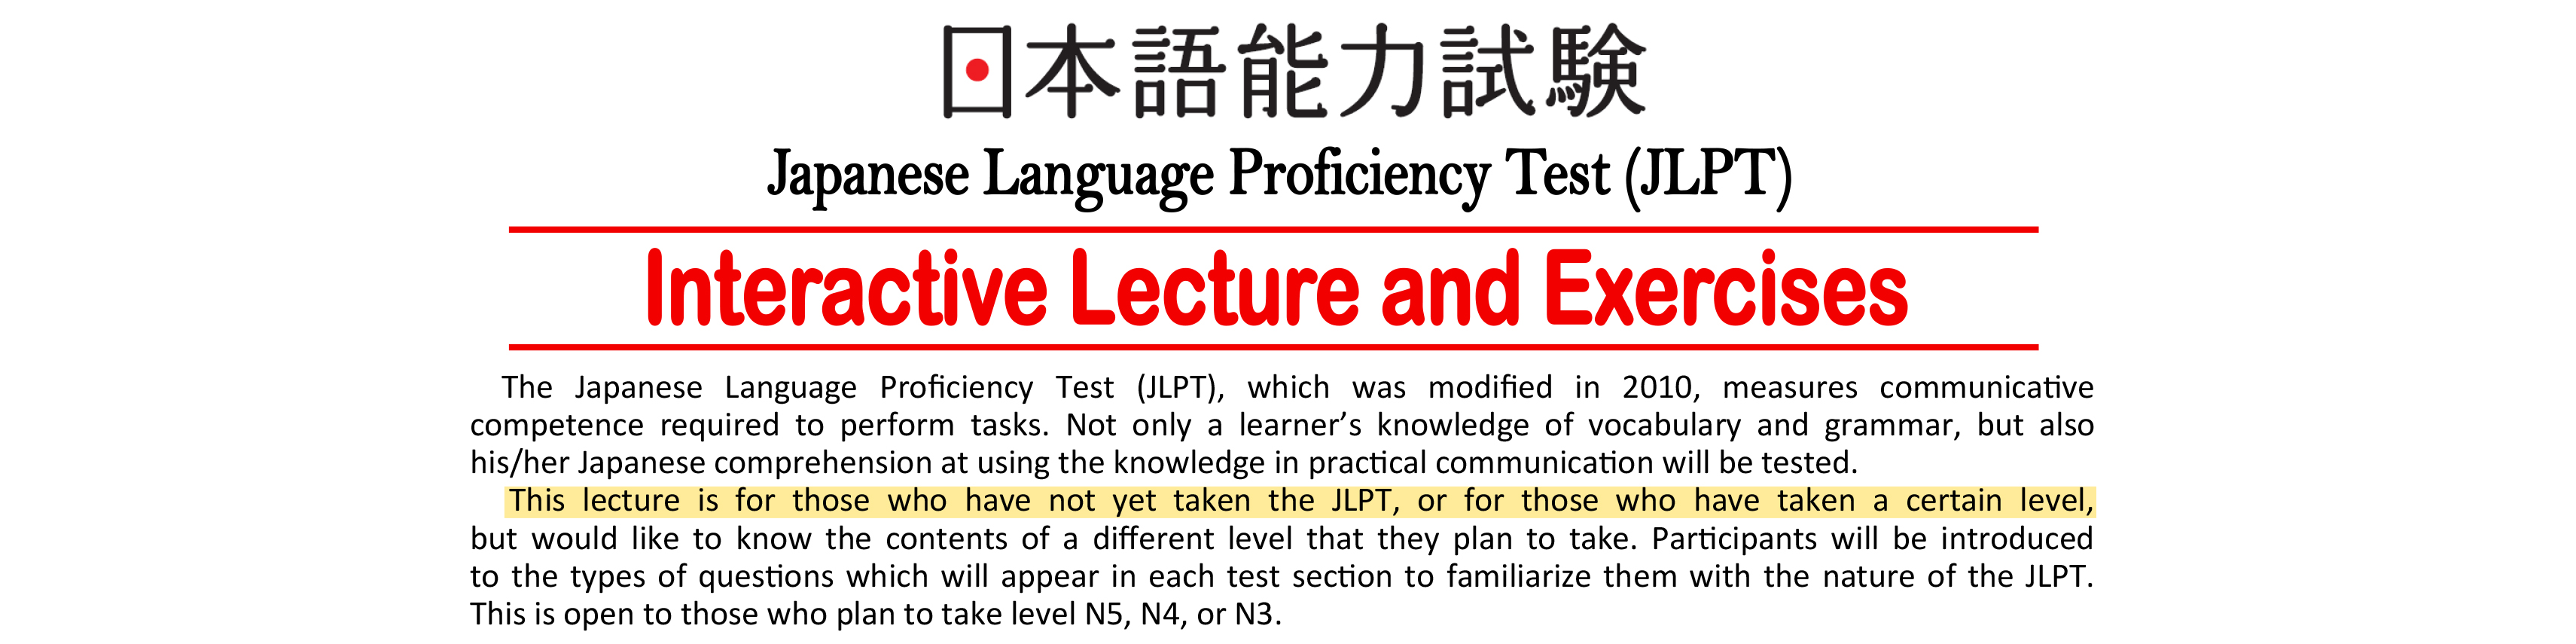 JLPT Interactive Lecture and Exercises for JLPT December